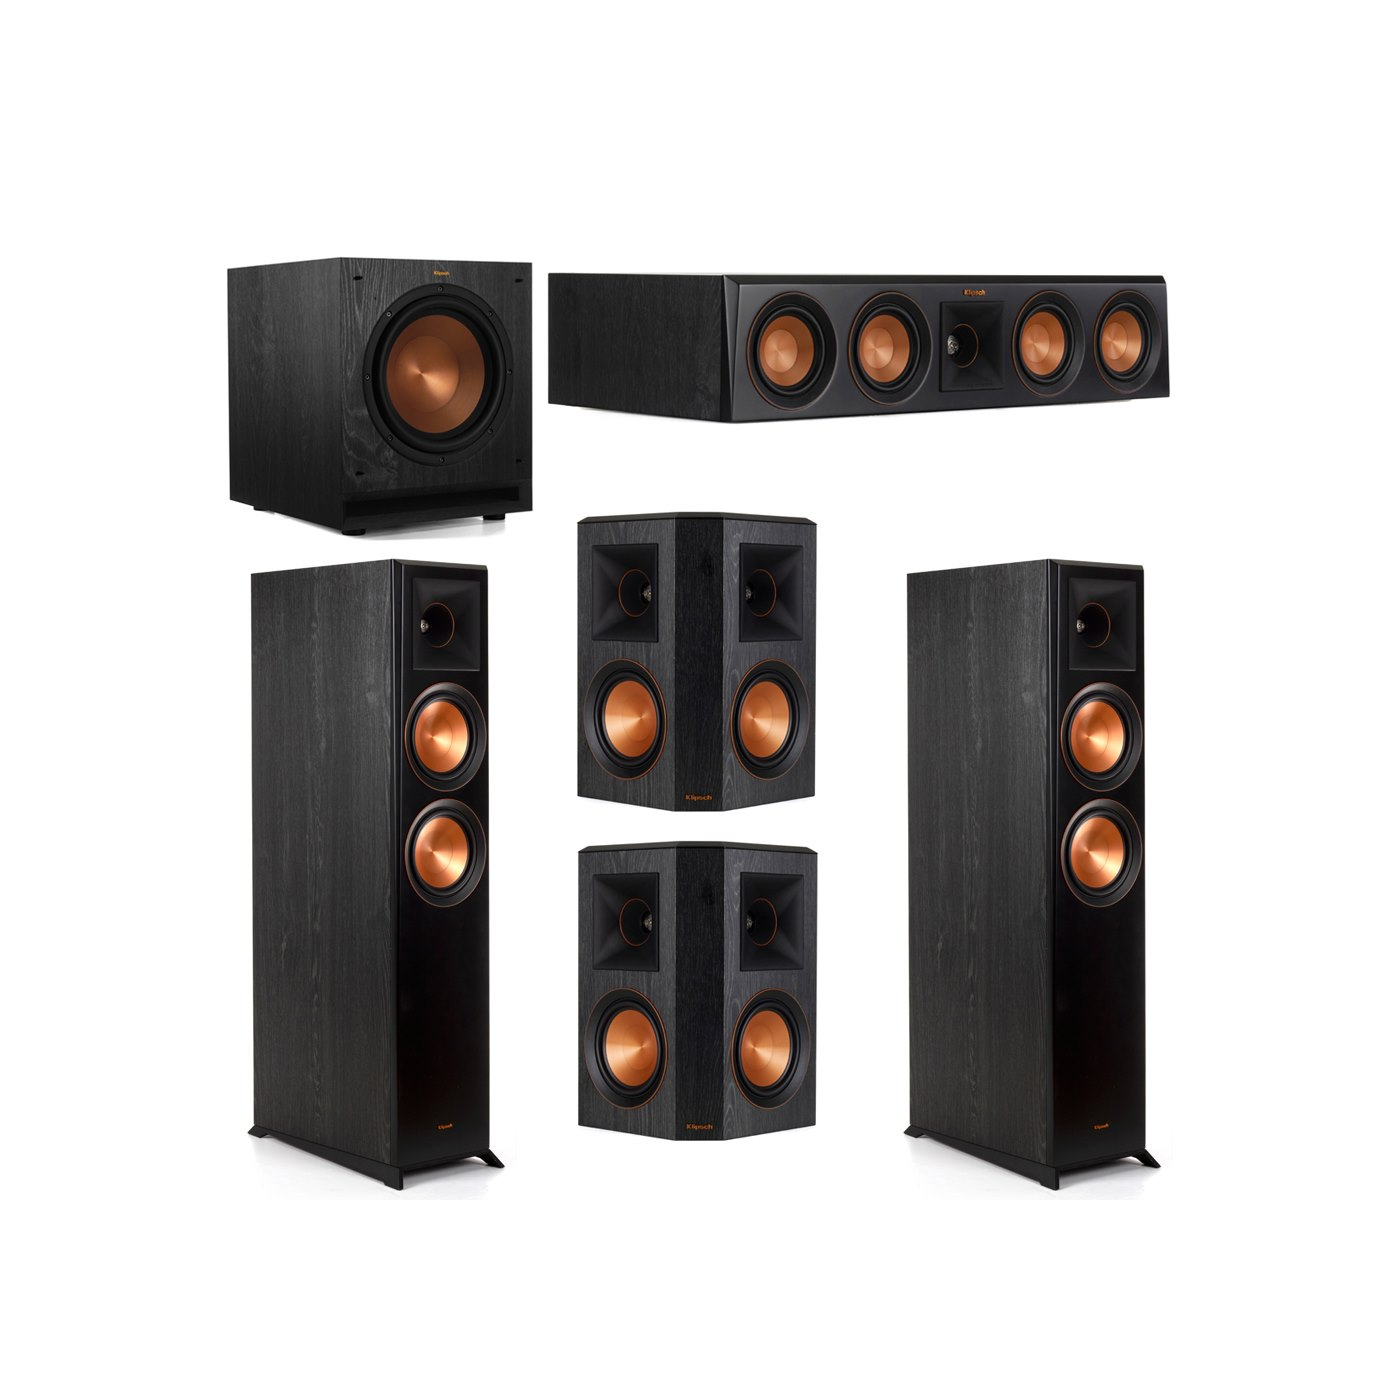 Klipsch 5.1 System with 2 RP-6000F Floorstanding Speakers, 1 Klipsch RP-404C Center Speaker, 2 Klipsch RP-502S Surround Speakers, 1 Klipsch SPL-100 Subwoofer